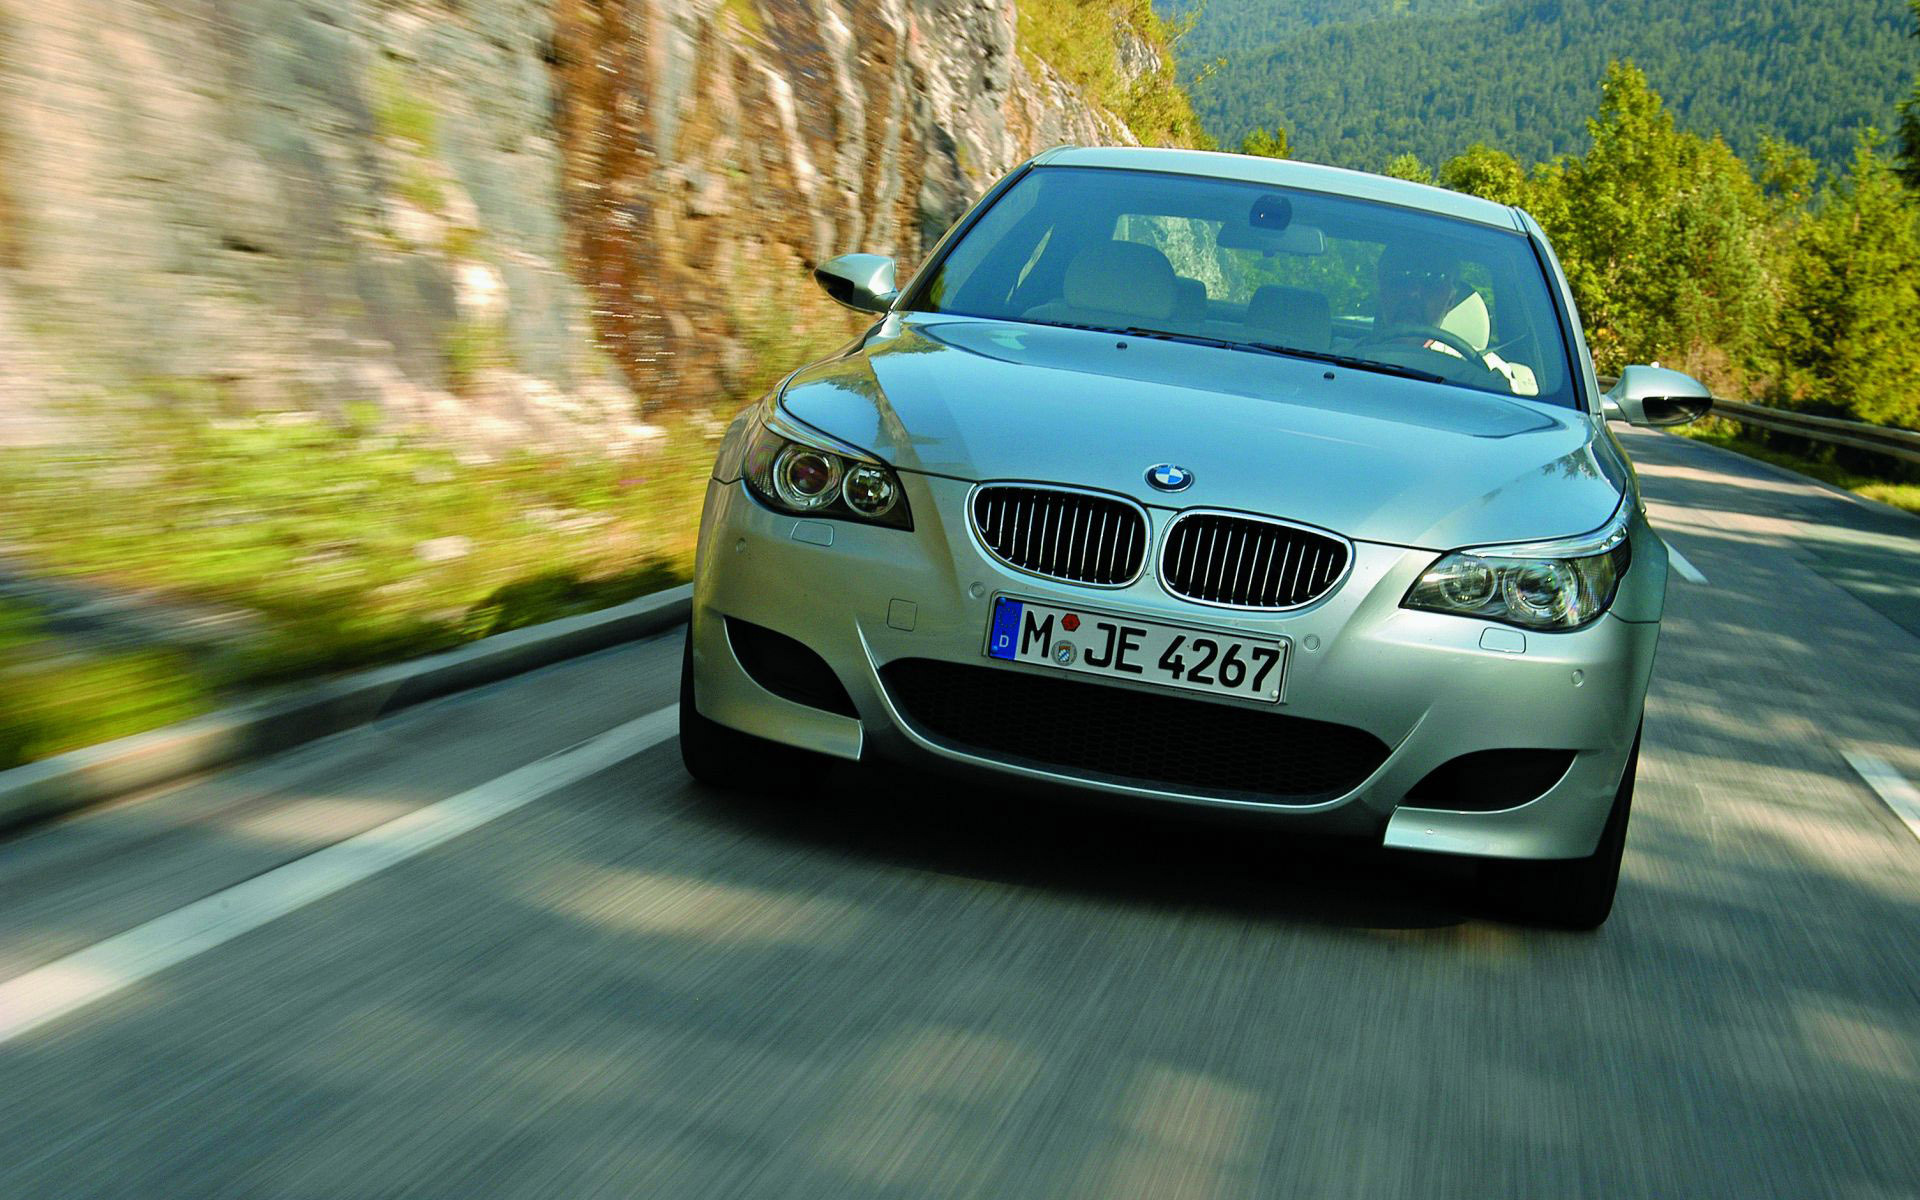 2006 BMW M5 in the mountains wallpaper 37284 1920x1200